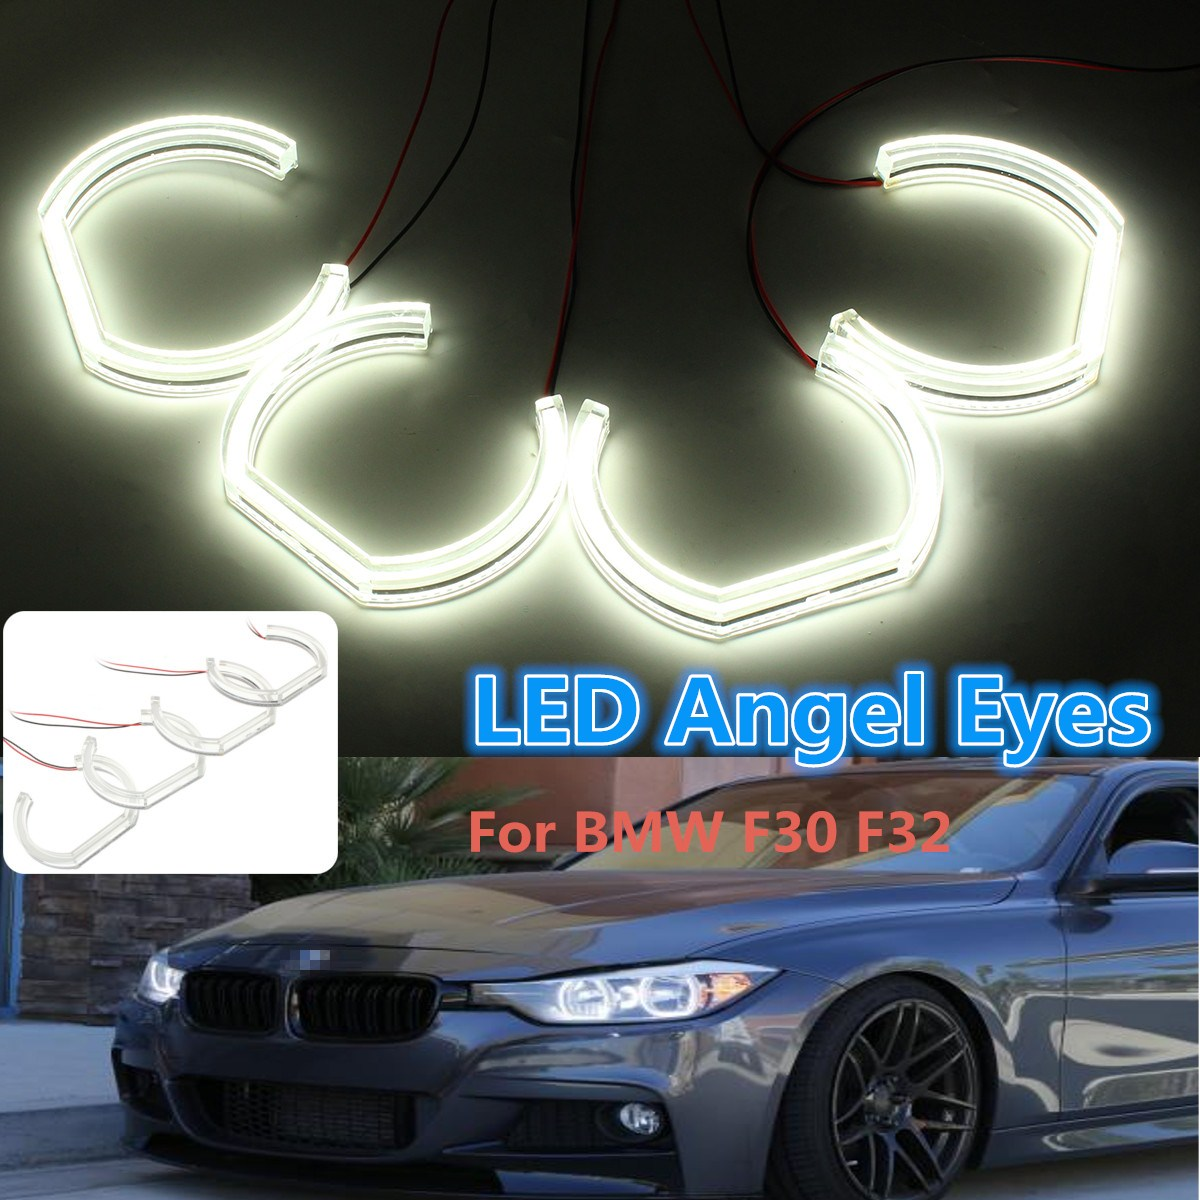 4pcs 12V LED White Angel Eyes Lights HALO Ring Headlight Lamps for BMW F30 E90 E92 3 Series